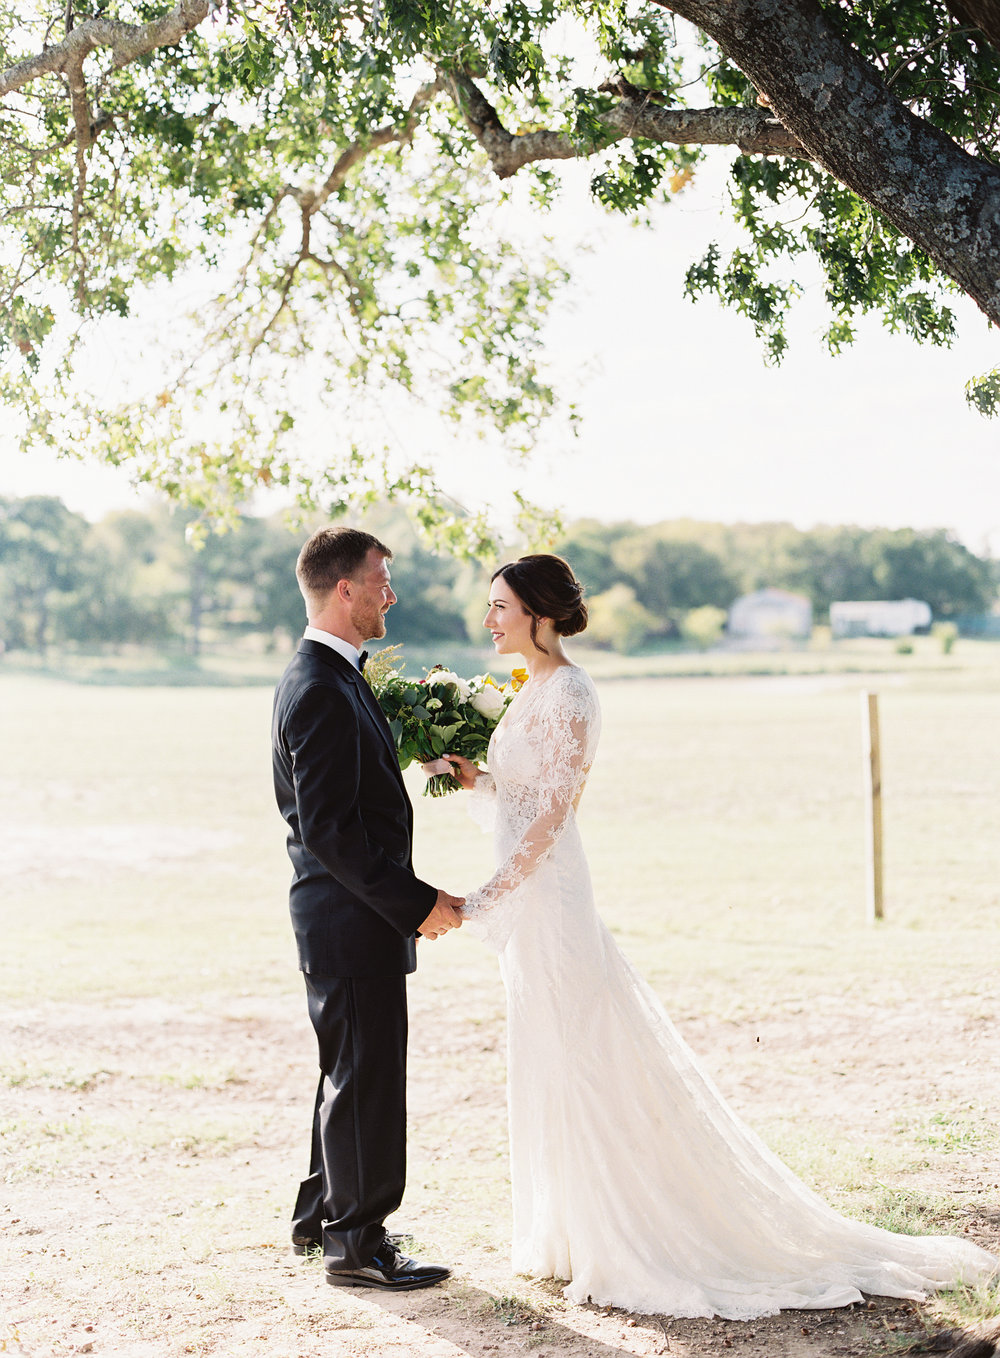 Stunning backyard wedding at a horse ranch, by Dallas destination wedding photographer Tracy Enoch